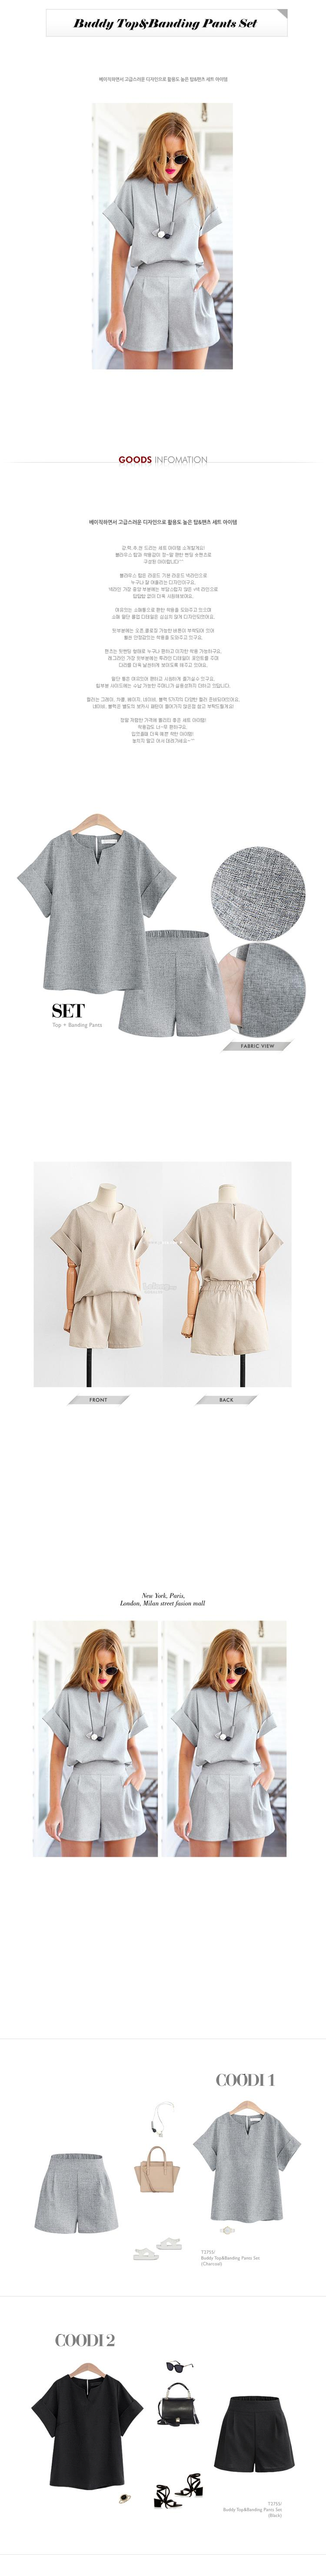 Short-sleeved Top Shorts Two-Piece Set Large Size Dress